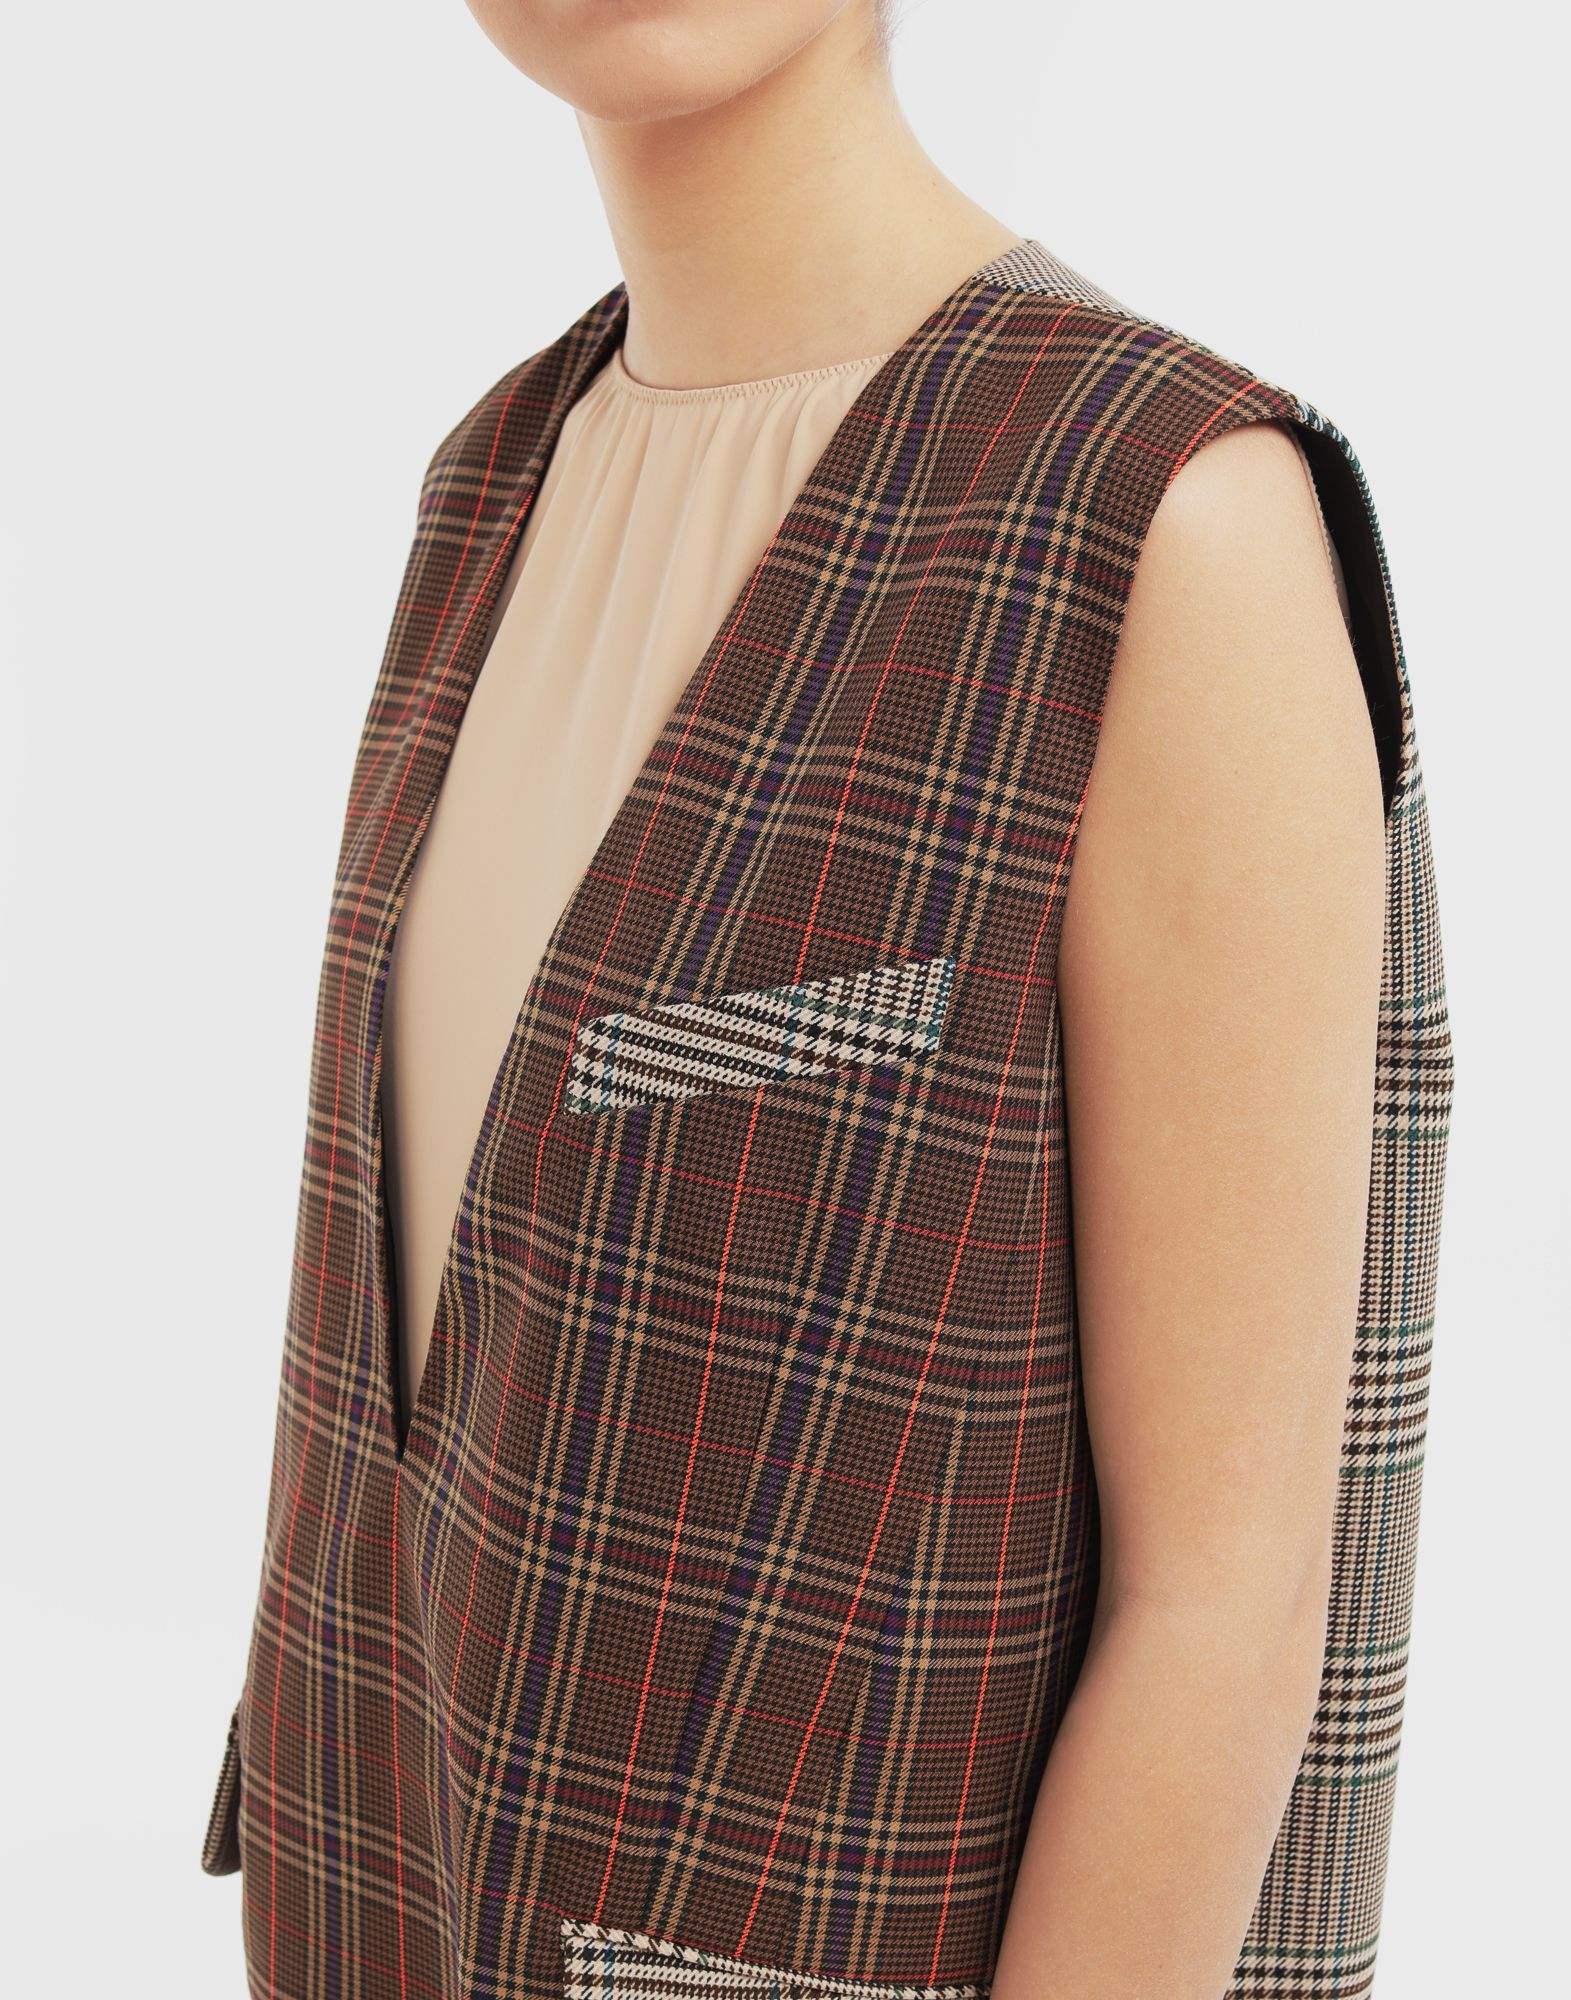 MM6 MAISON MARGIELA Checked décolleté dress Dress Woman a